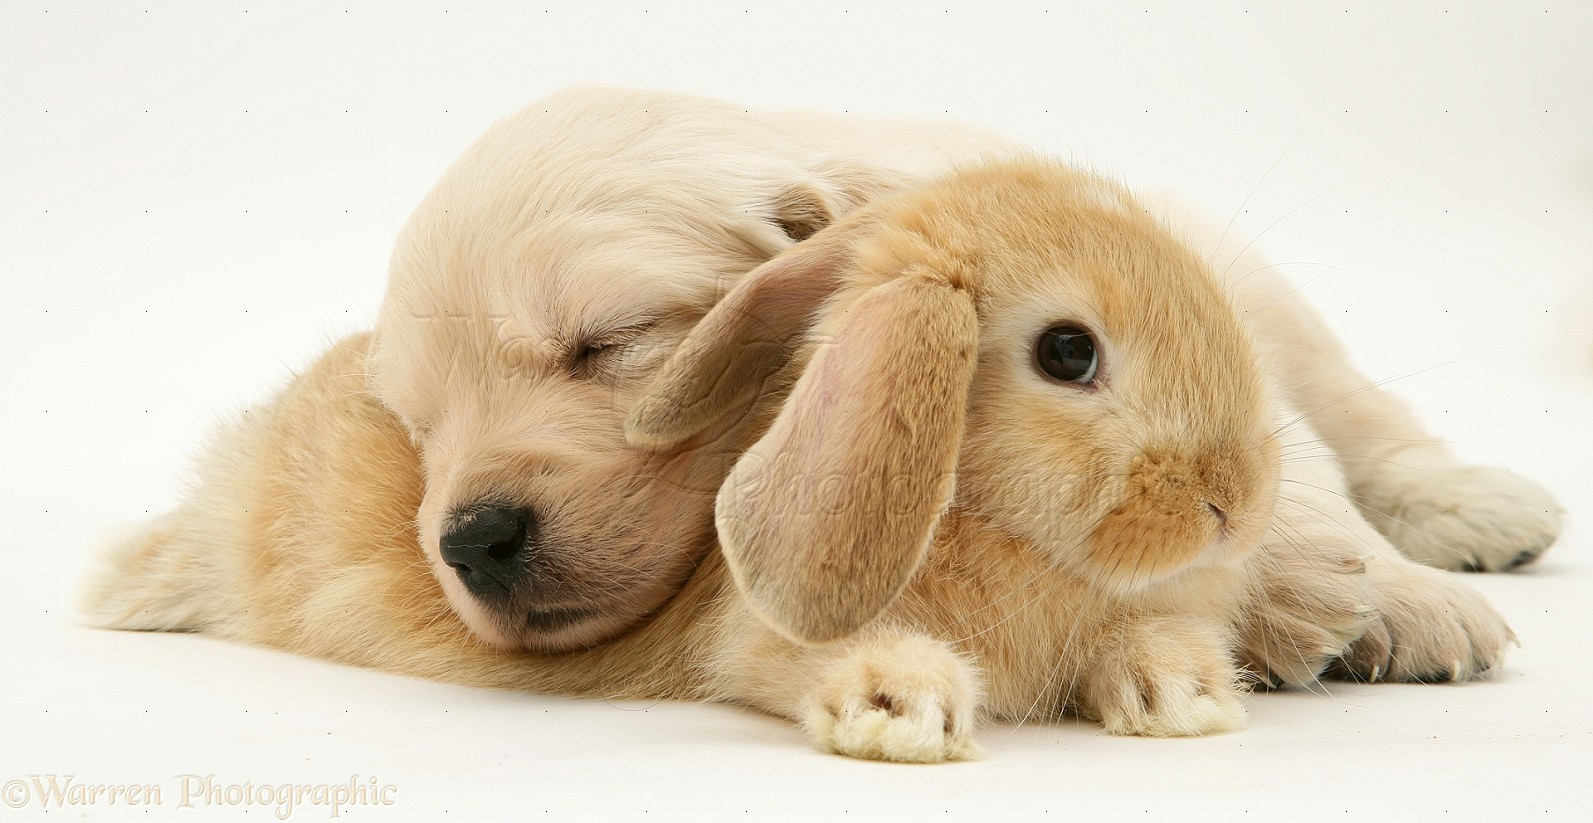 Cute Baby Pig Wallpaper Pets Baby Sandy Lop Rabbit With Golden Retriever Pup